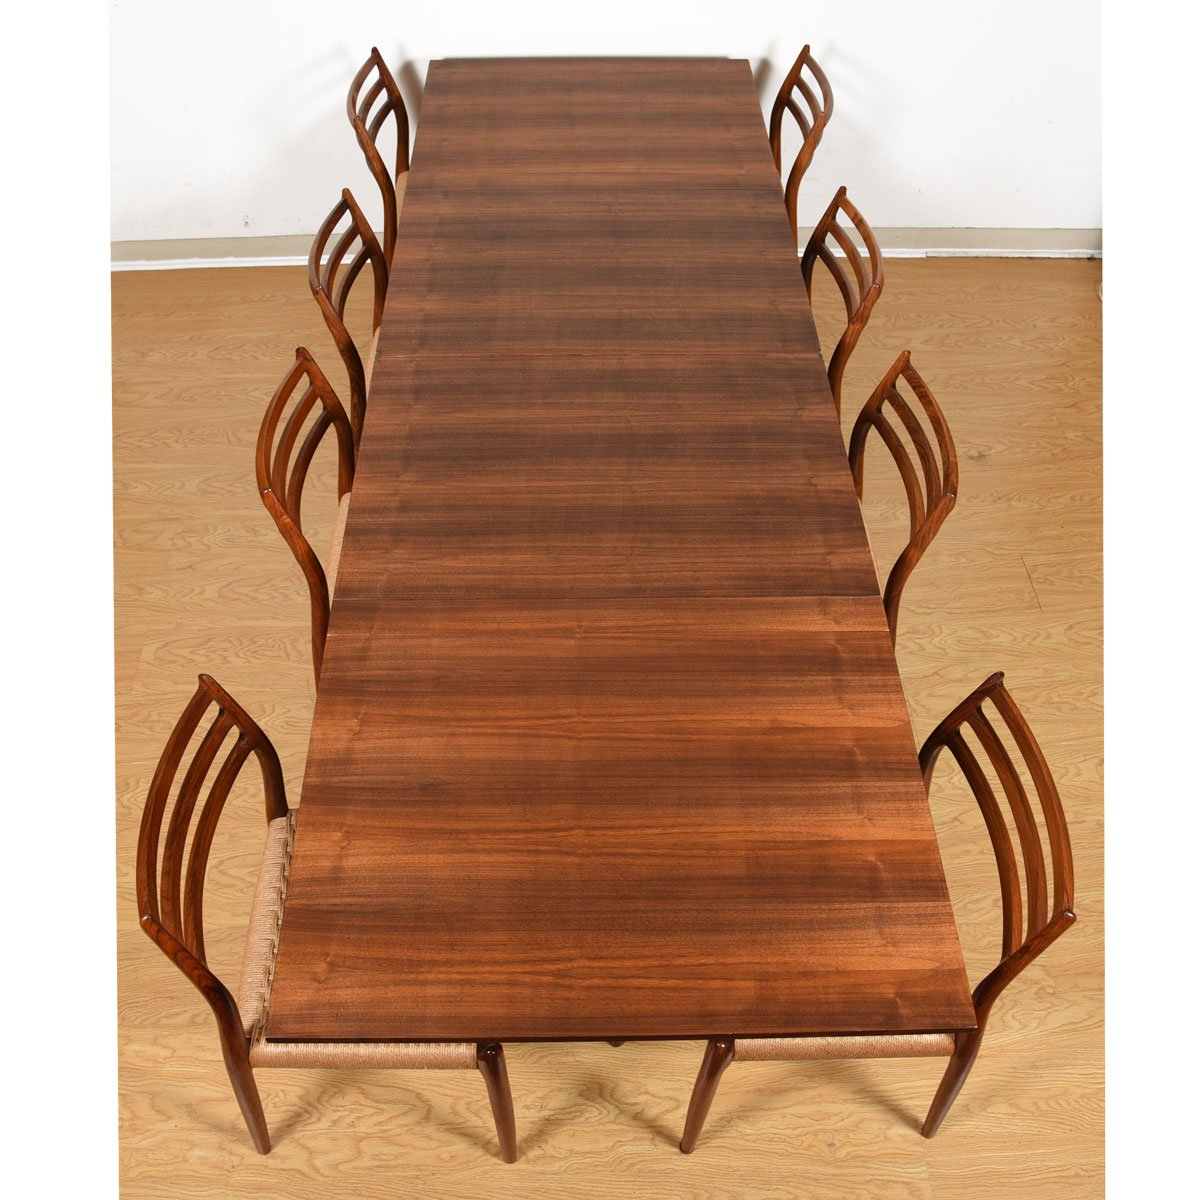 Iconic Super Expanding 'Maria Flap' Swedish Walnut Dining Table